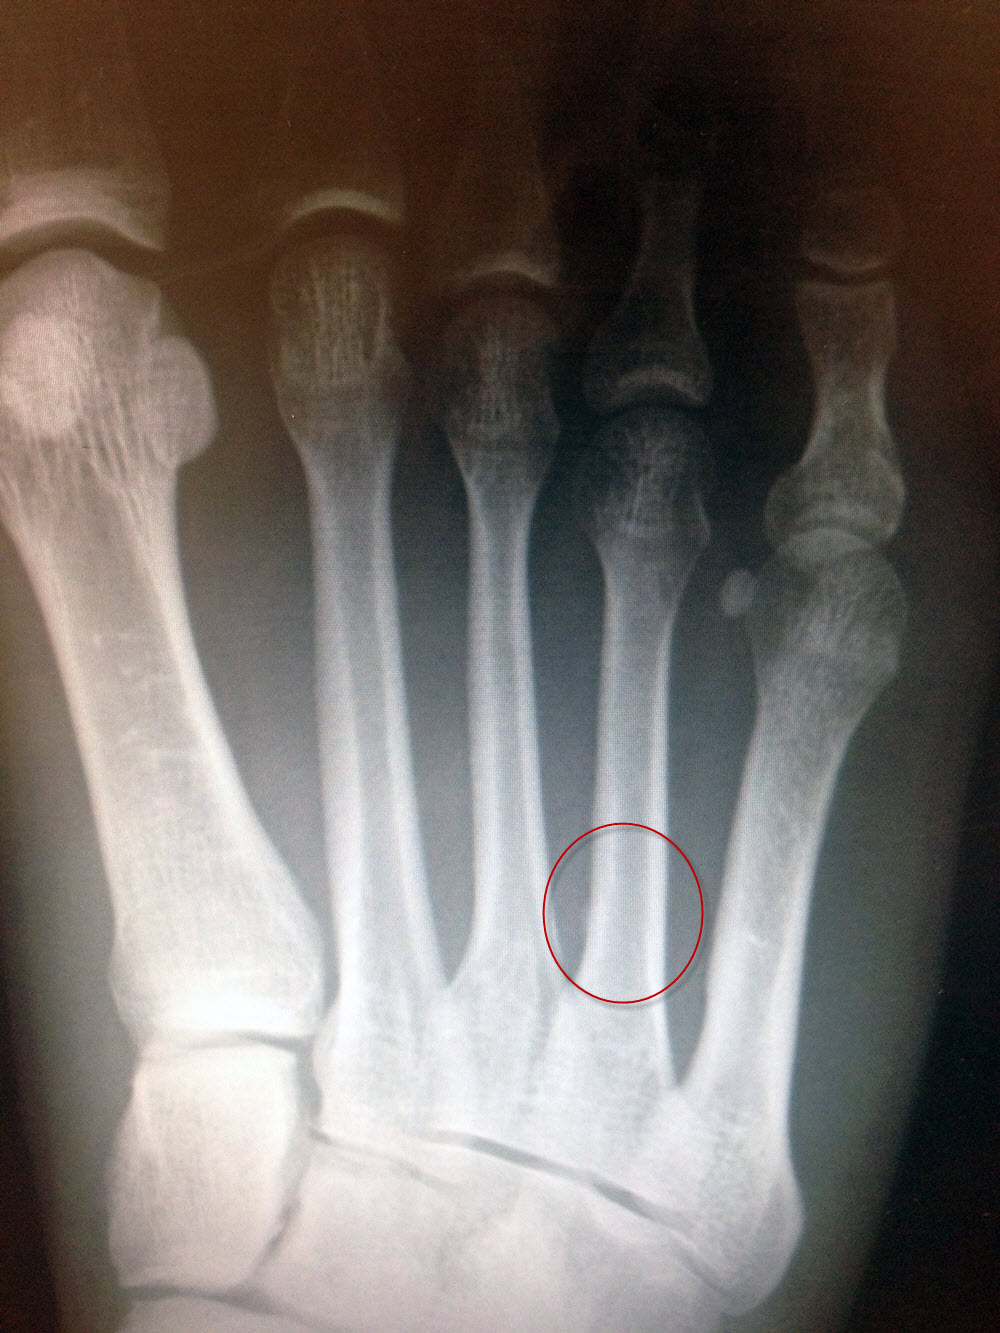 Stress fracture is visible on my 4th metatarsal